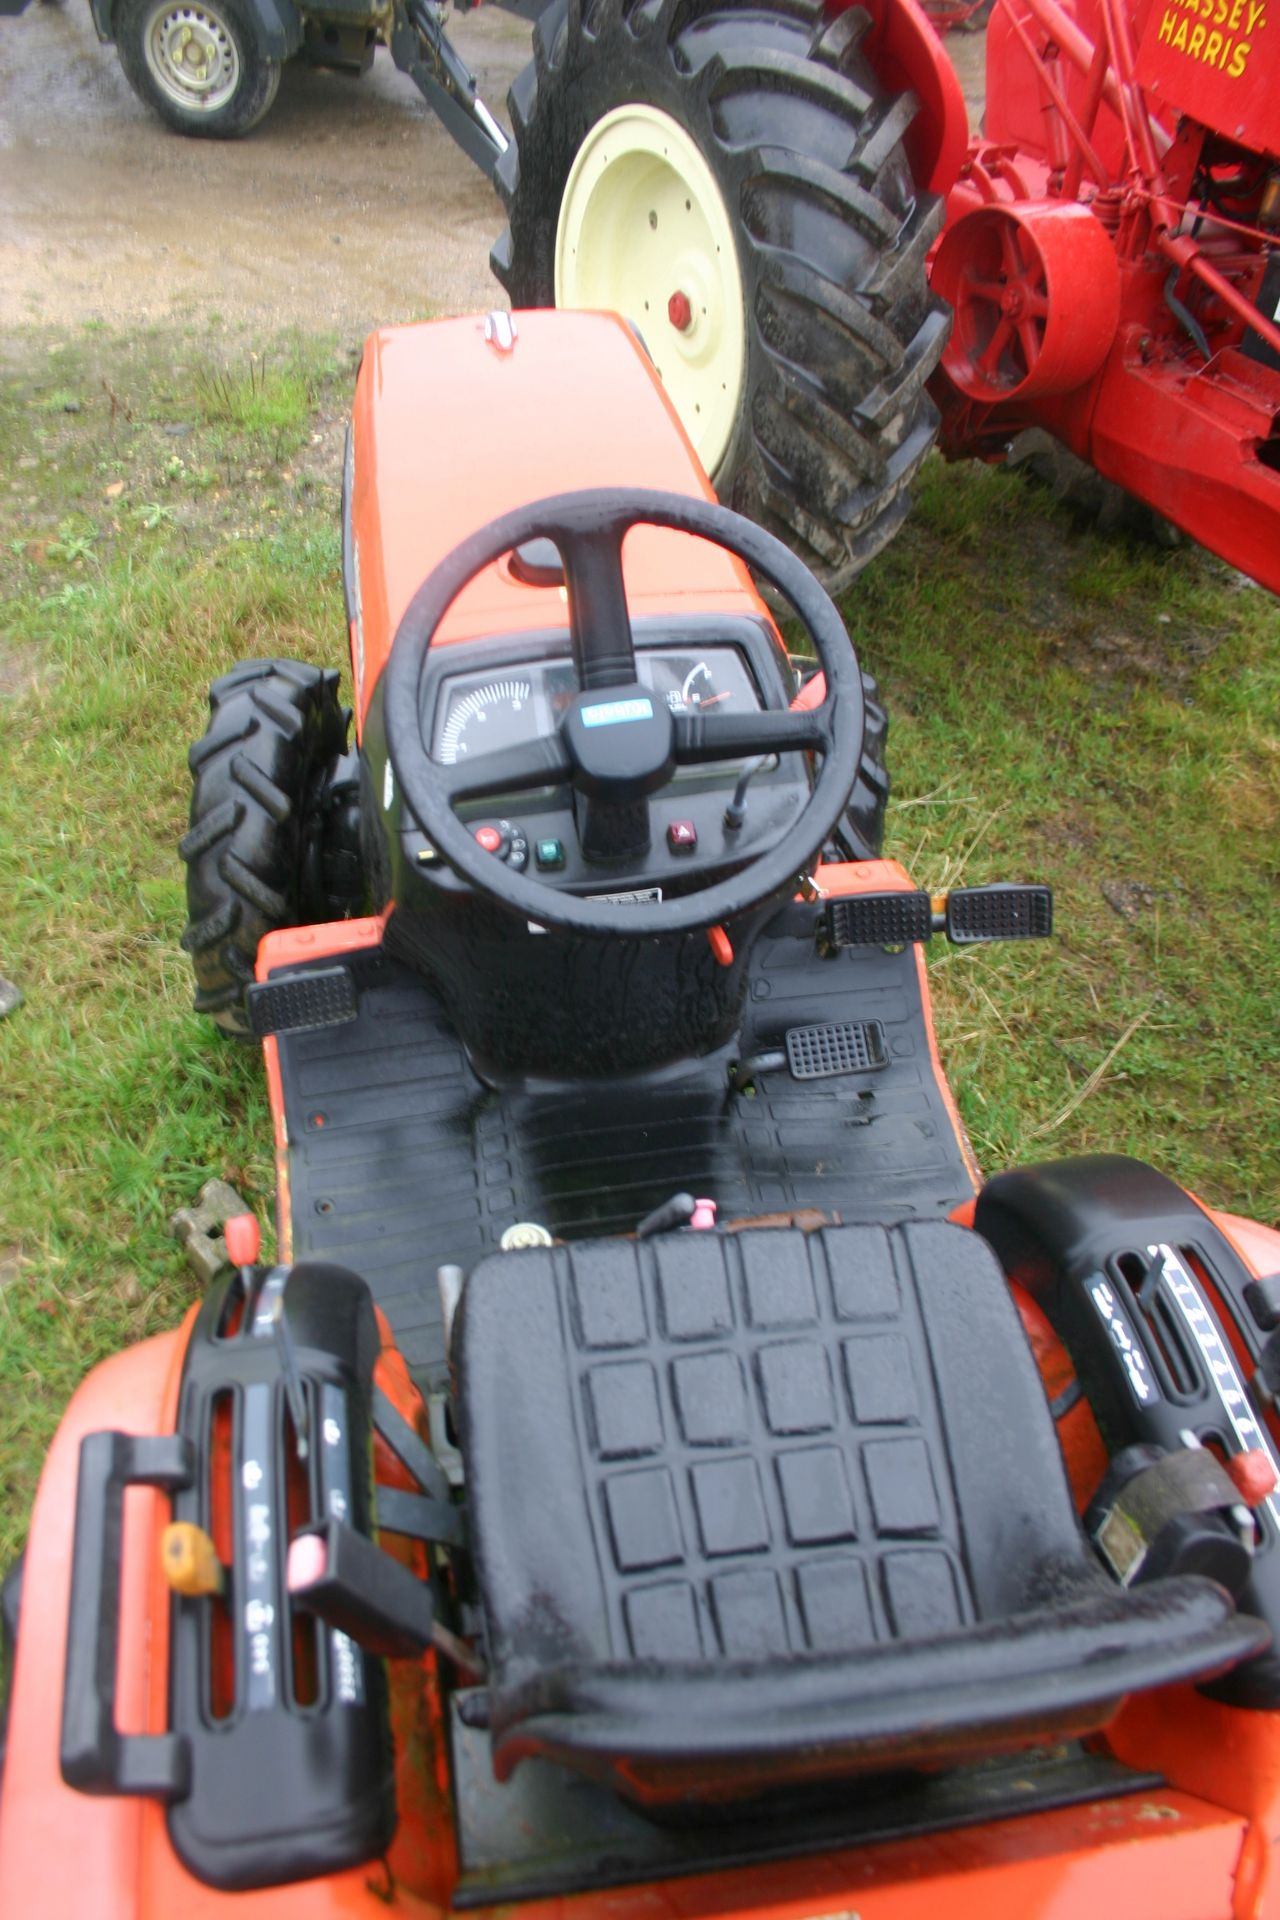 Lot 111 - KUBOTA B2110 HST COMPACT TRACTOR 4WD, SHOWING 1189 HOURS, AGRICULTURAL TYRES *PLUS VAT*